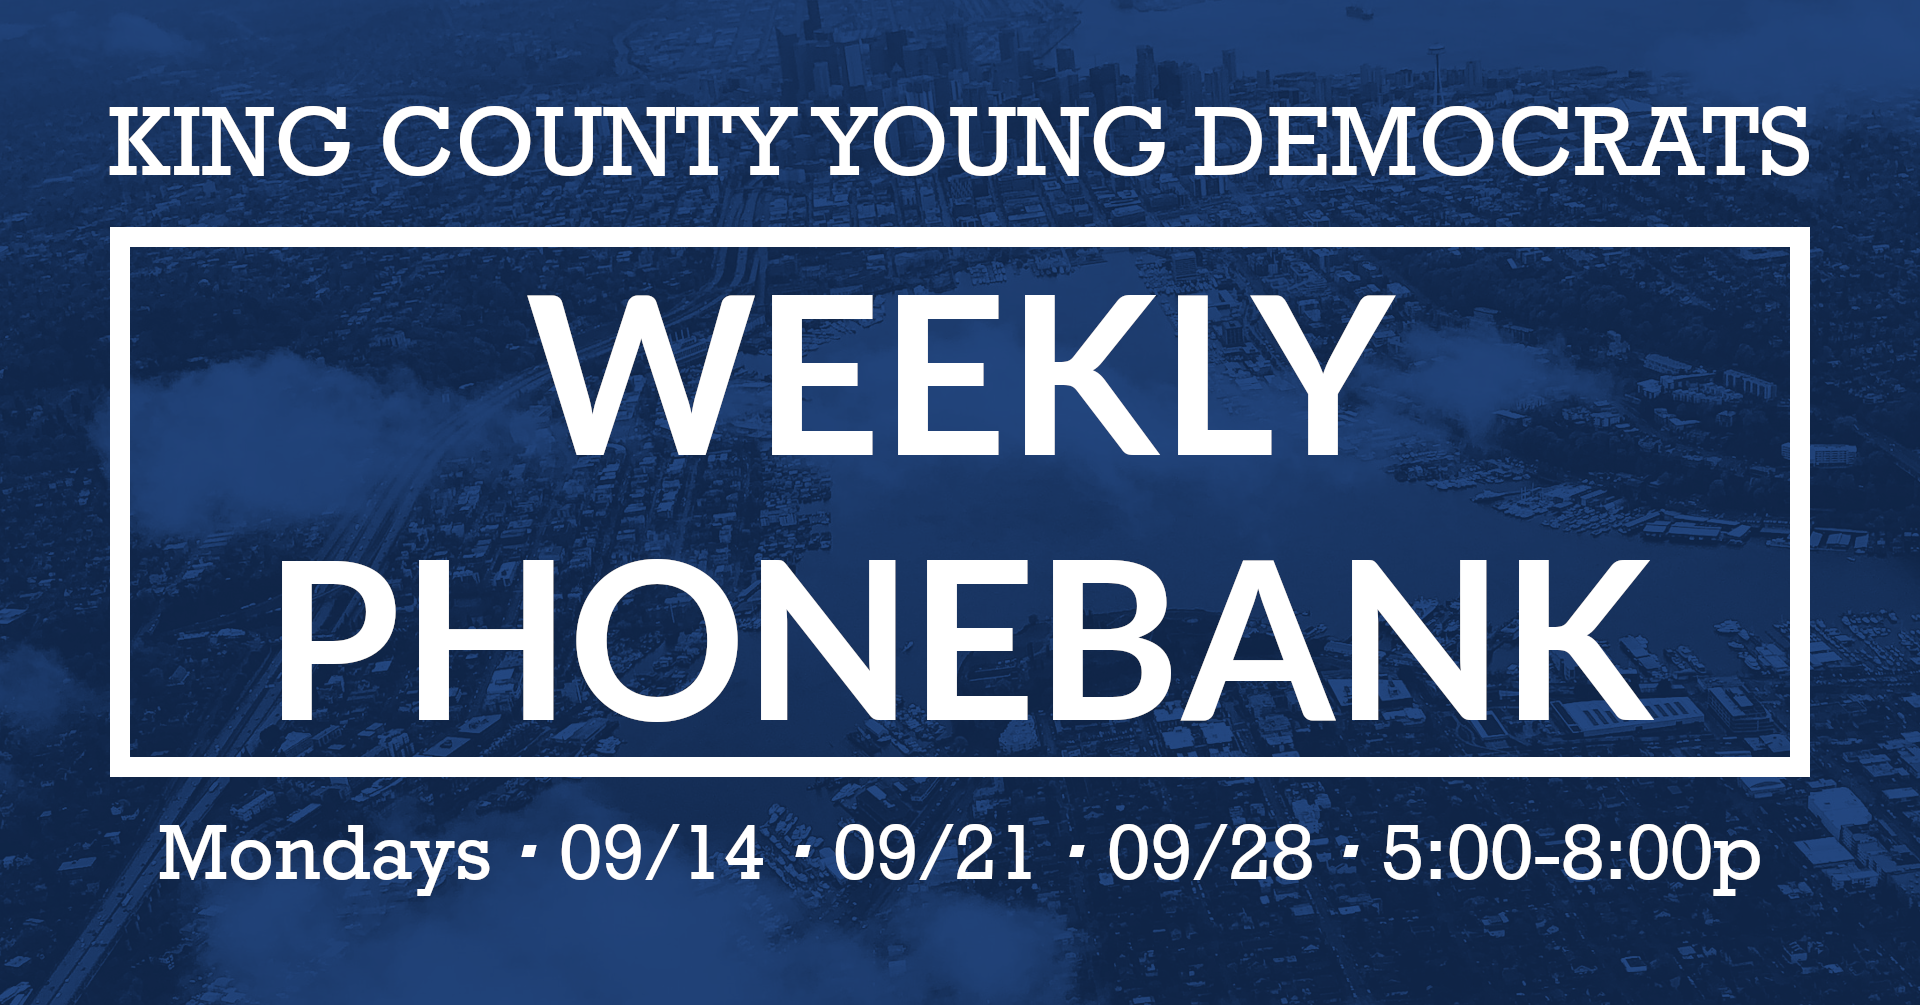 King County Young Democrats Weekly Phonebank. Mondays: 9/14, 9/21, 9/28. 5:00-8:00 PM